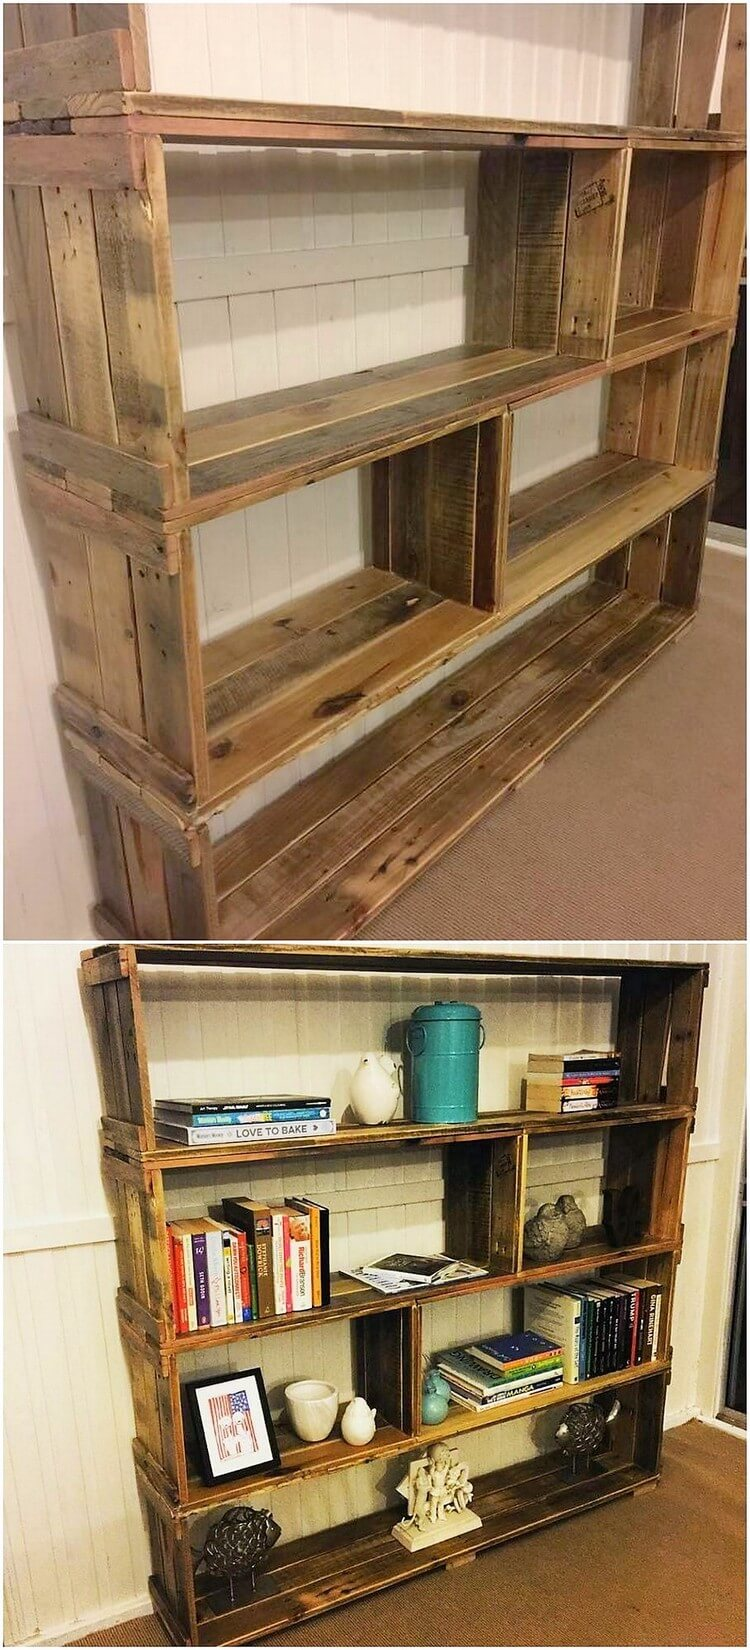 Pallet Books Shelving Unit